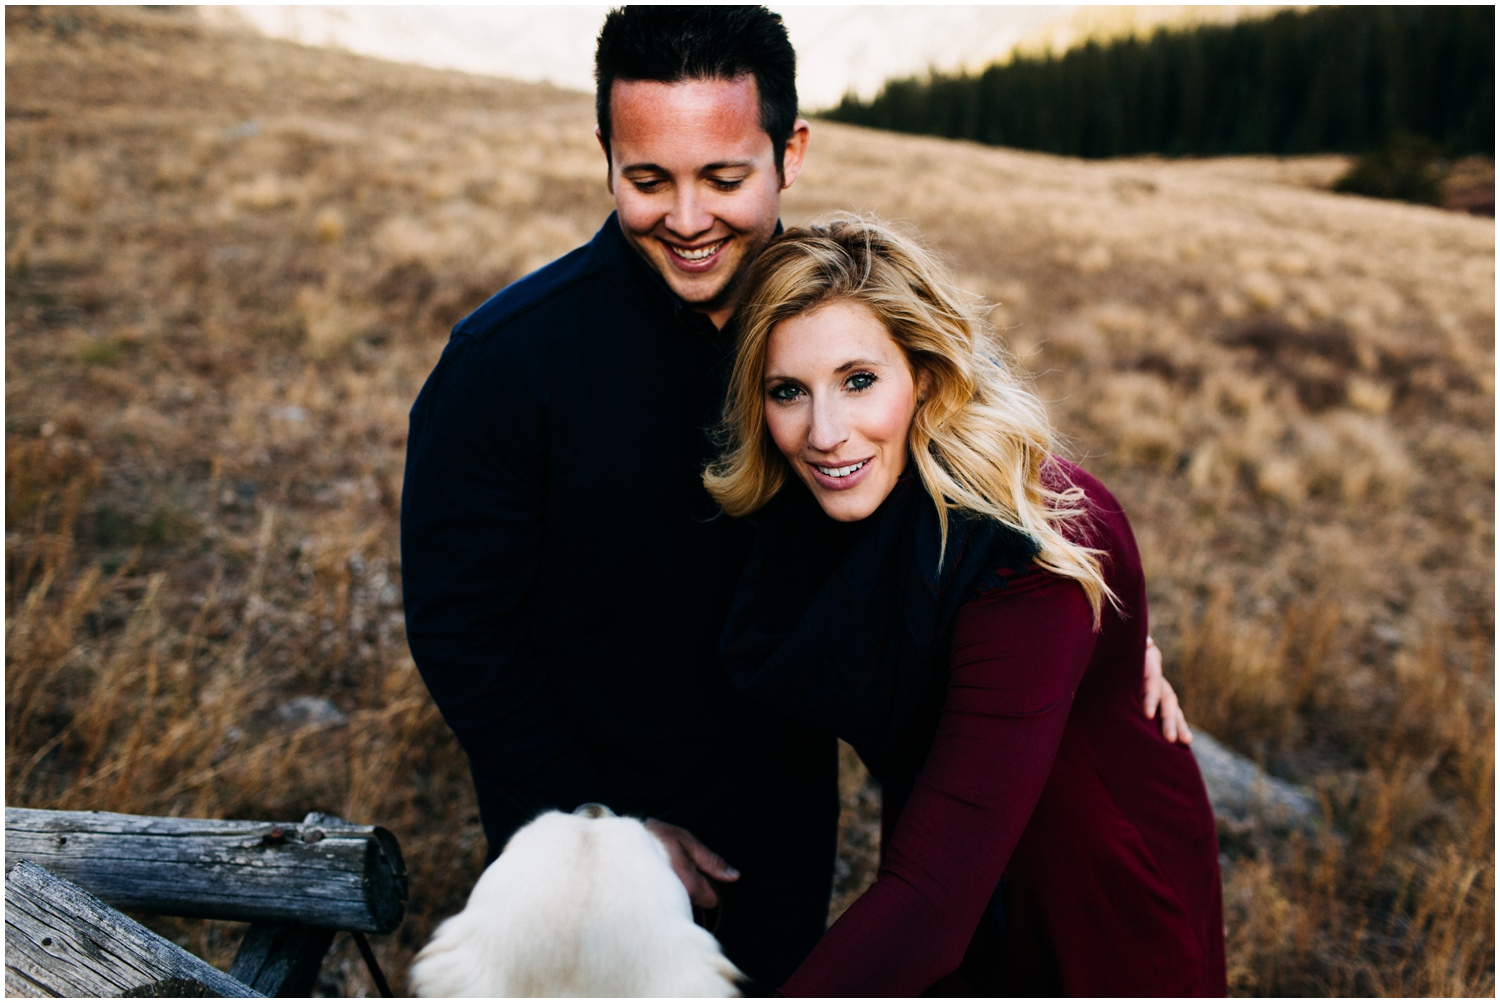 adventure_photo_engagement_session_vail_colorado_taylor_powers__0032.jpg